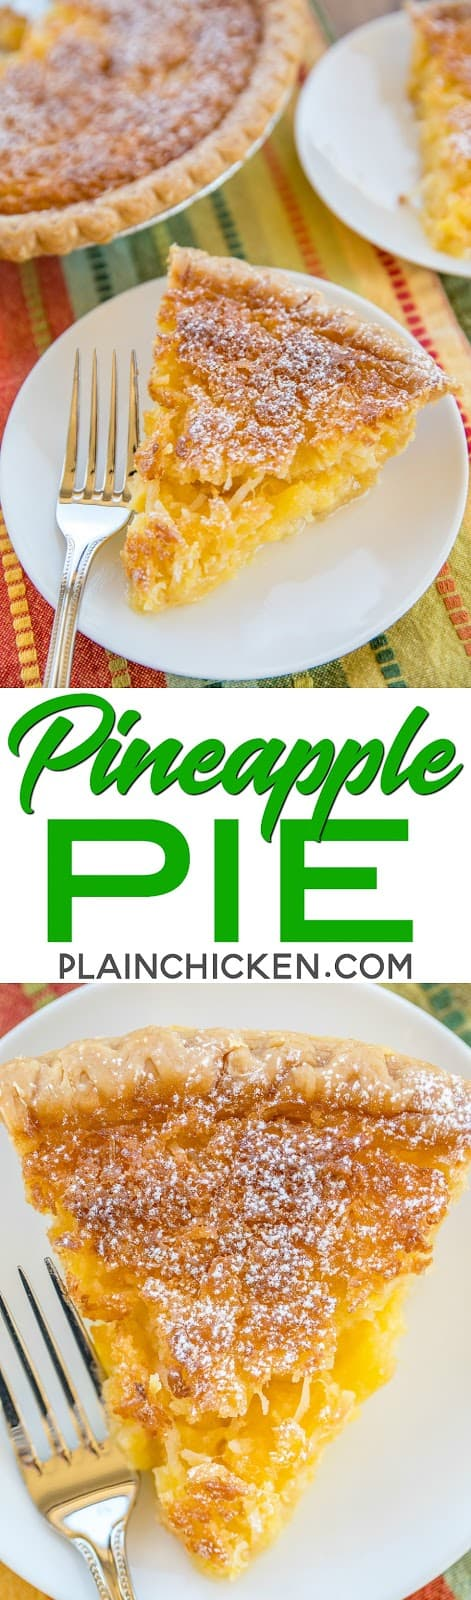 Pineapple Pie - Pineapple Coconut Chess Pie - so easy and it tastes fantastic!! Great for parties and potlucks! Crushed pineapple, coconut, butter, cornmeal, flour, vanilla, sugar and eggs. Can serve warm or cold with whipped cream or vanilla ice cream. There are never any leftovers!!! SO good! #pie #dessert #pineapple #dessertrecipe